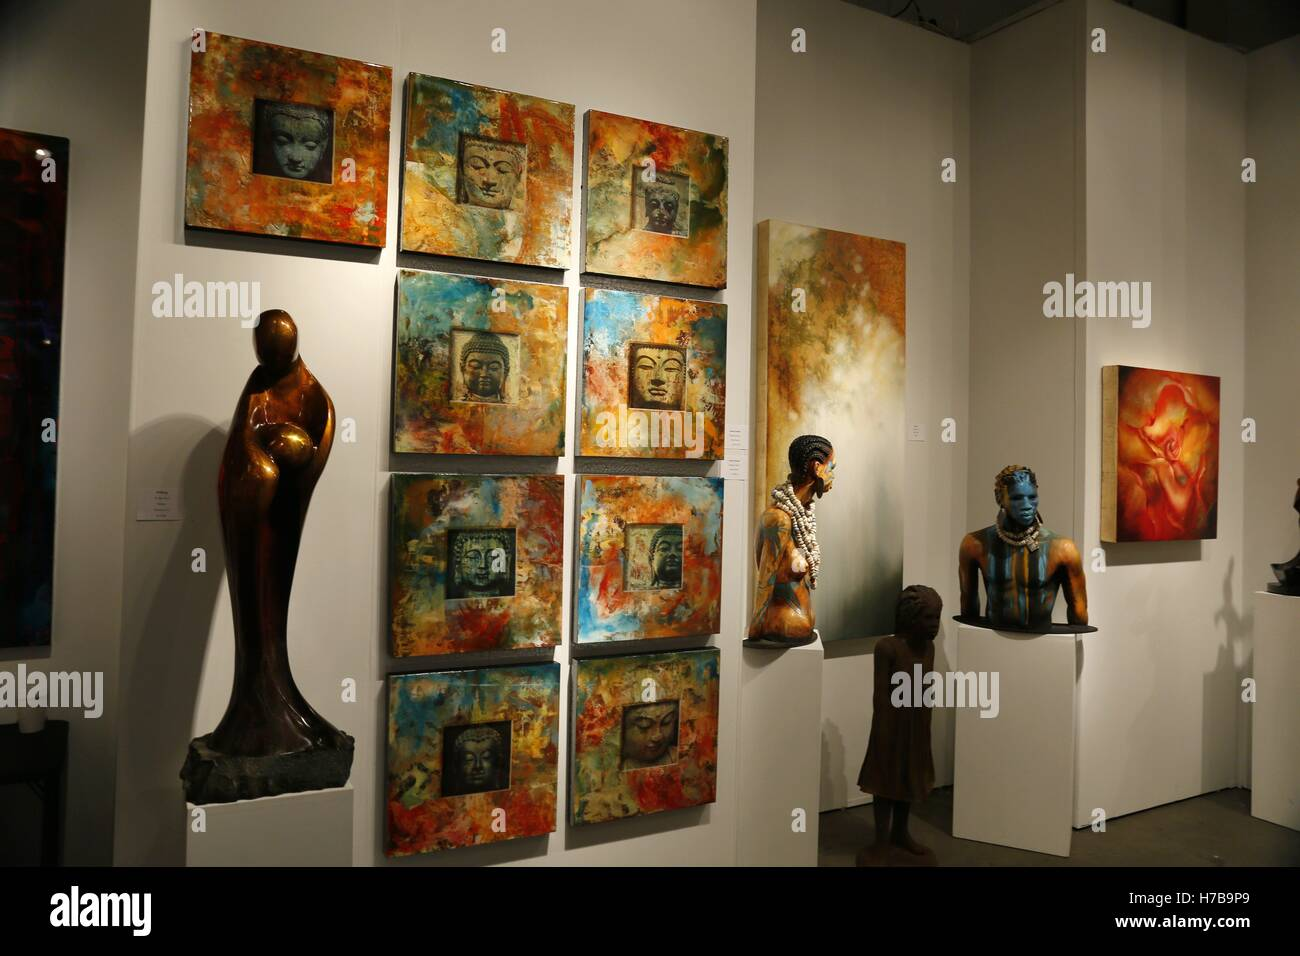 Chicago, Chicago, USA. 3rd Nov, 2016. Photo taken on Nov. 3, 2016 shows artworks displayed in an exhibition hall - Stock Image